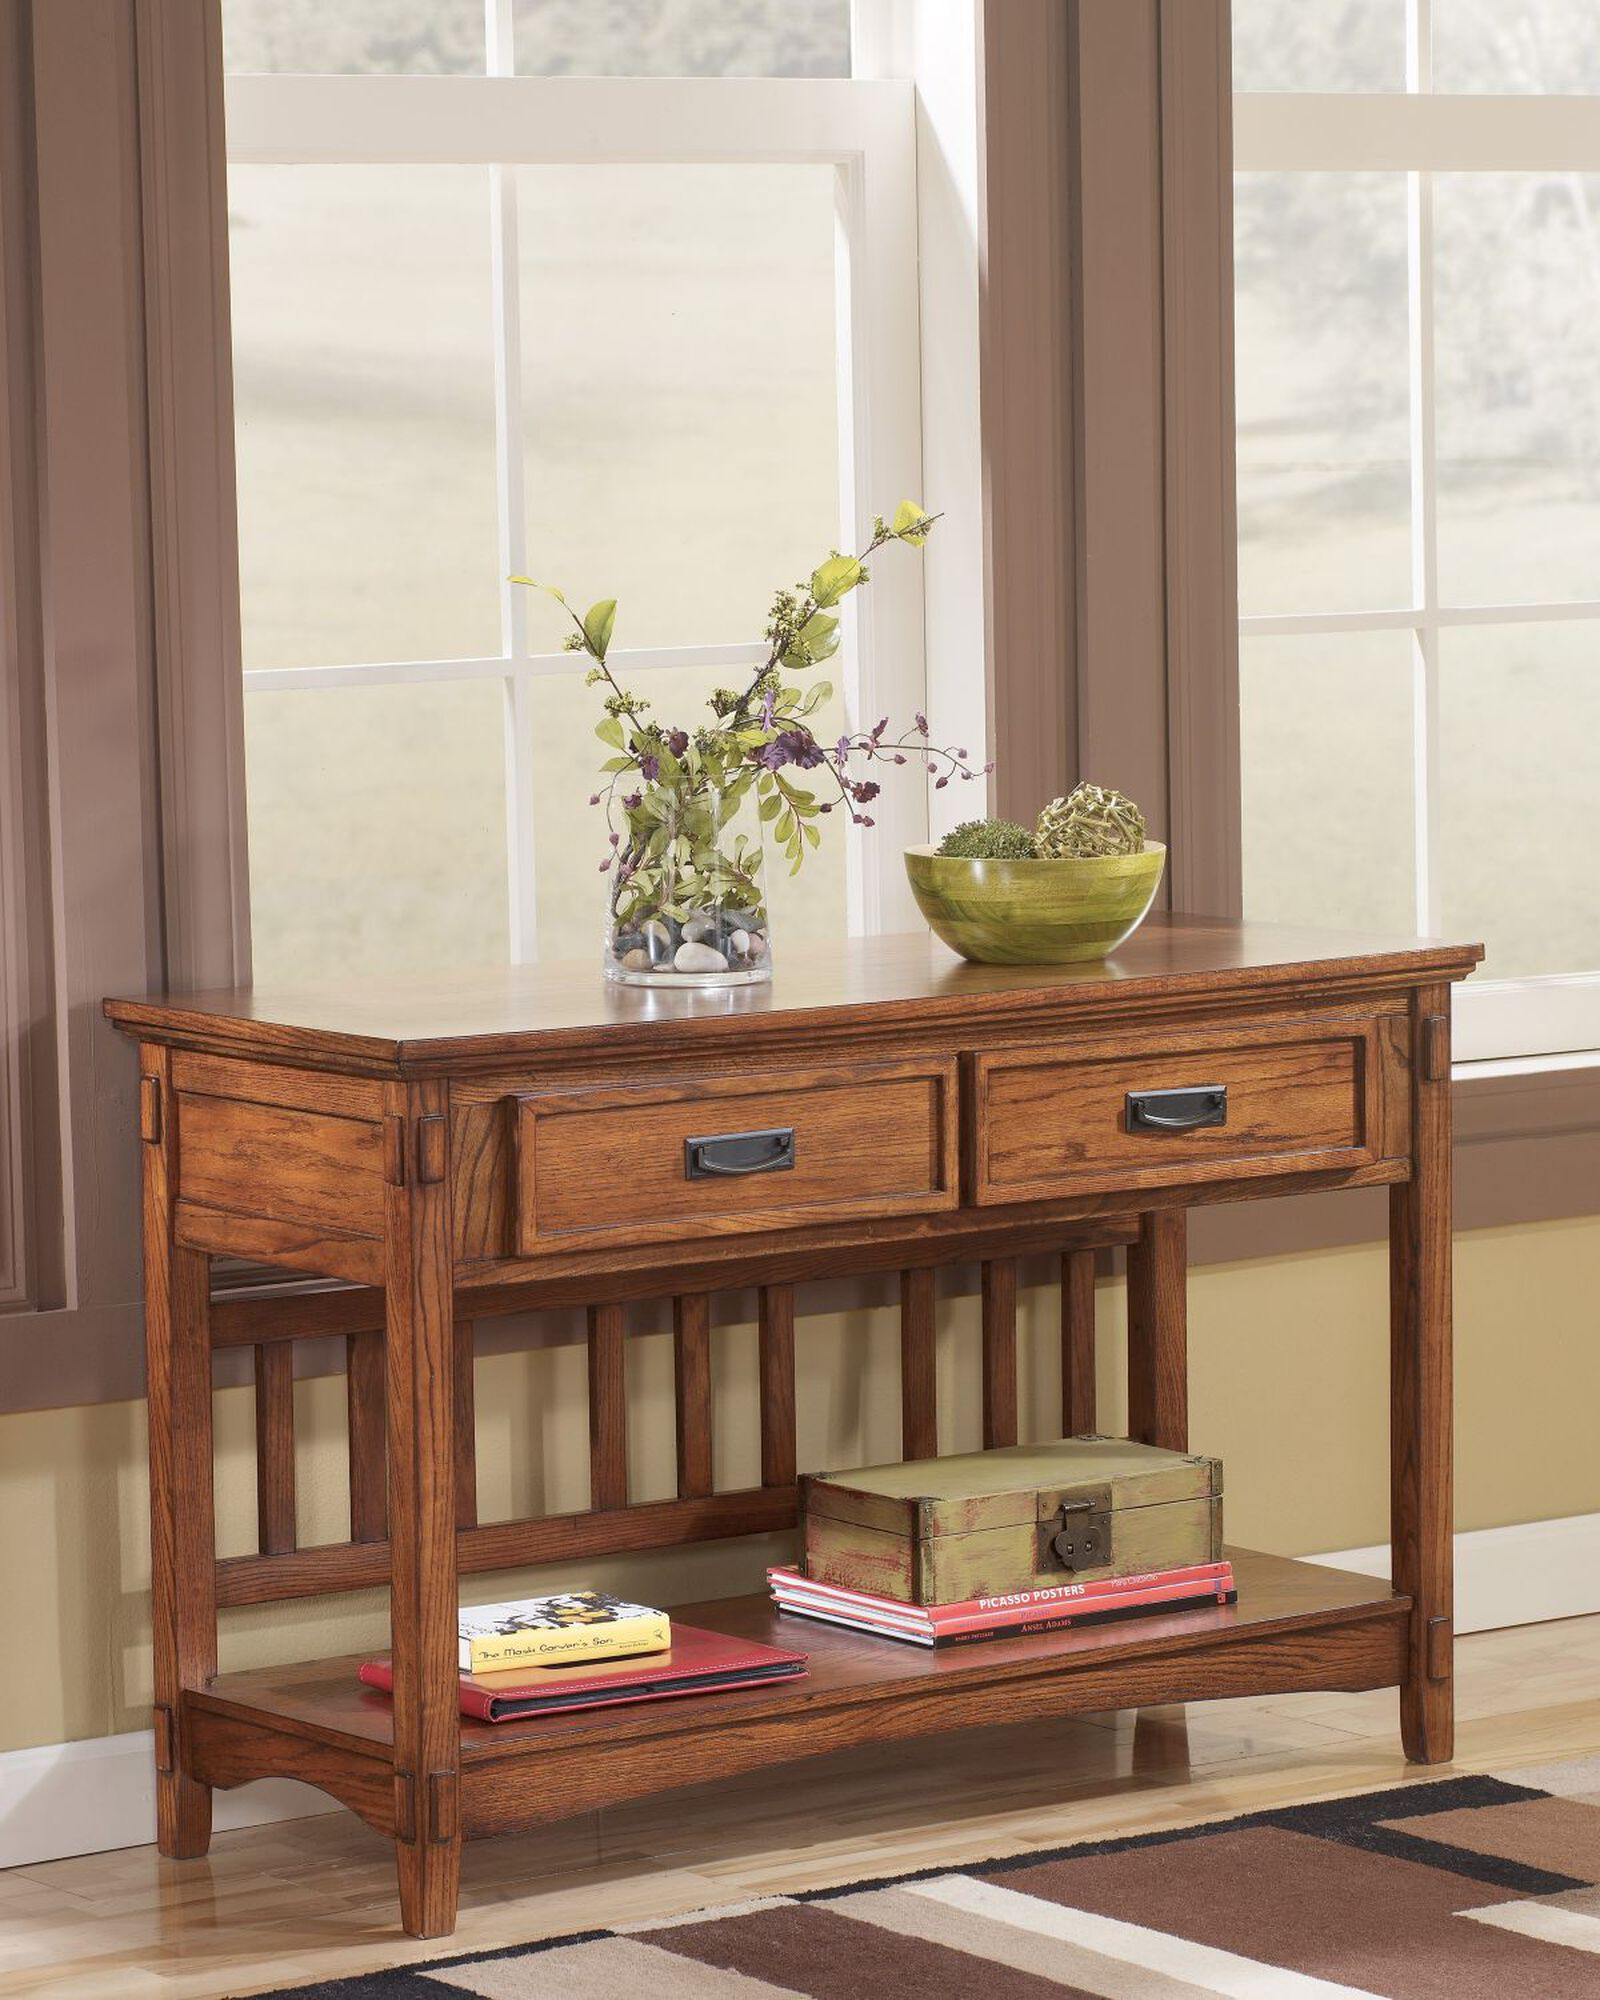 Lighted End Tables Living Room Furniture: Two-Drawer Mission Console Table In Light Oak